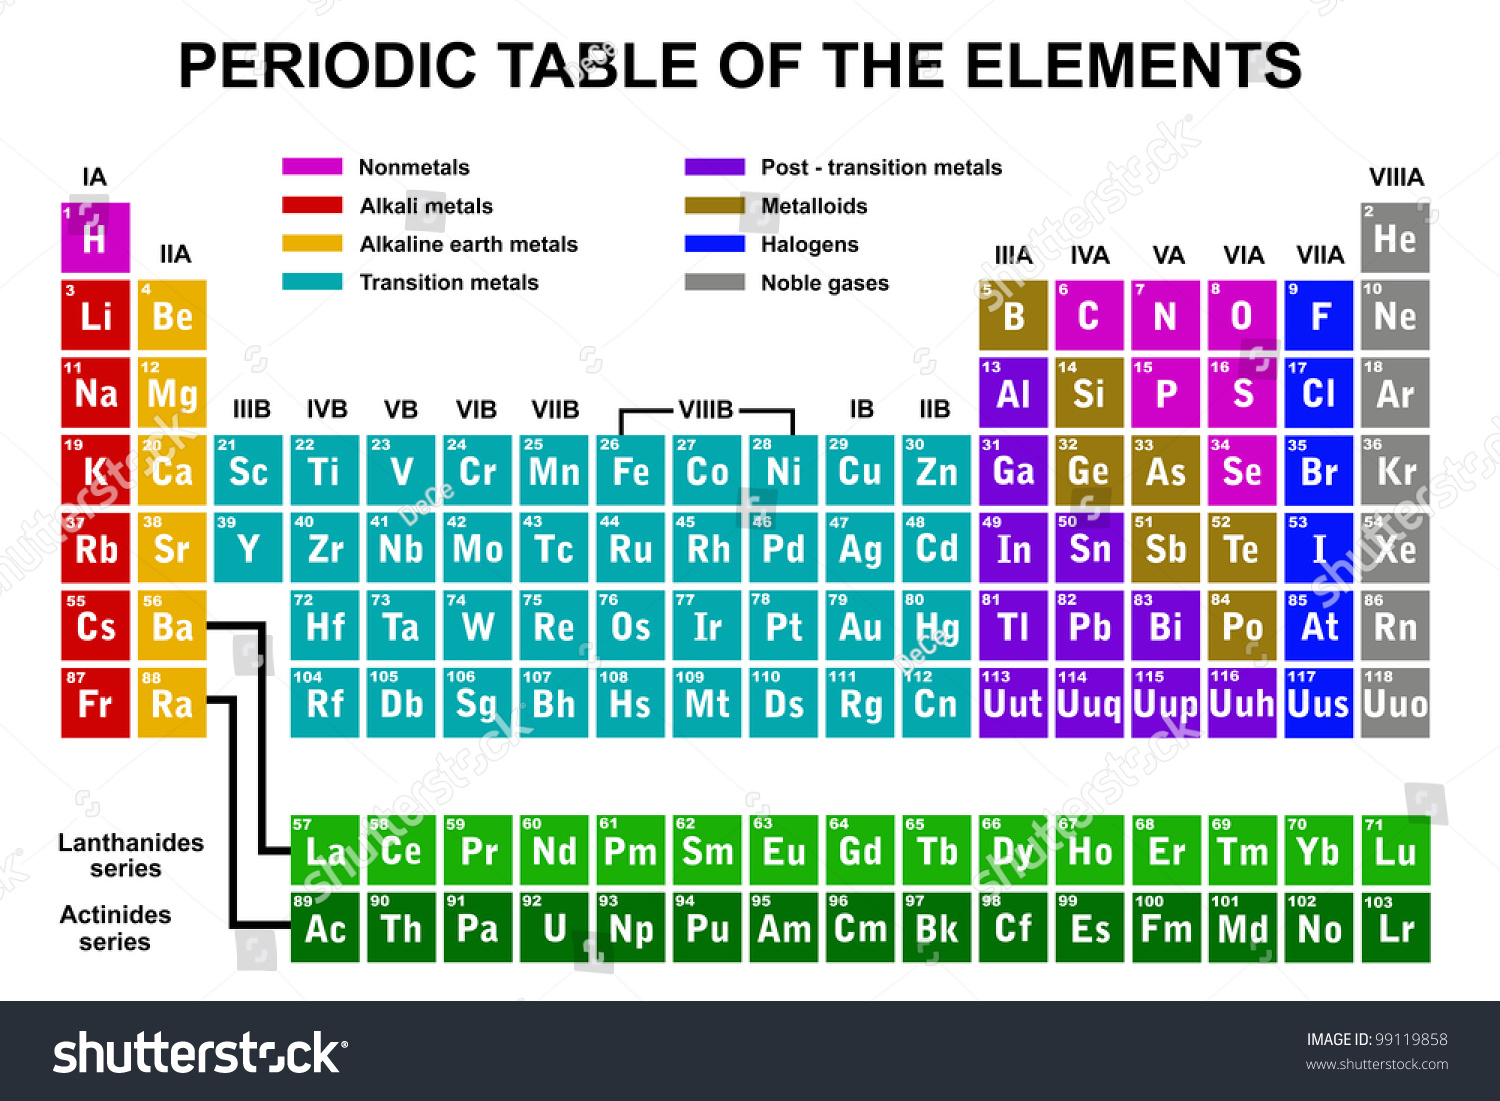 Periodic table of the elements stock vector illustration - Periodic table of html elements ...